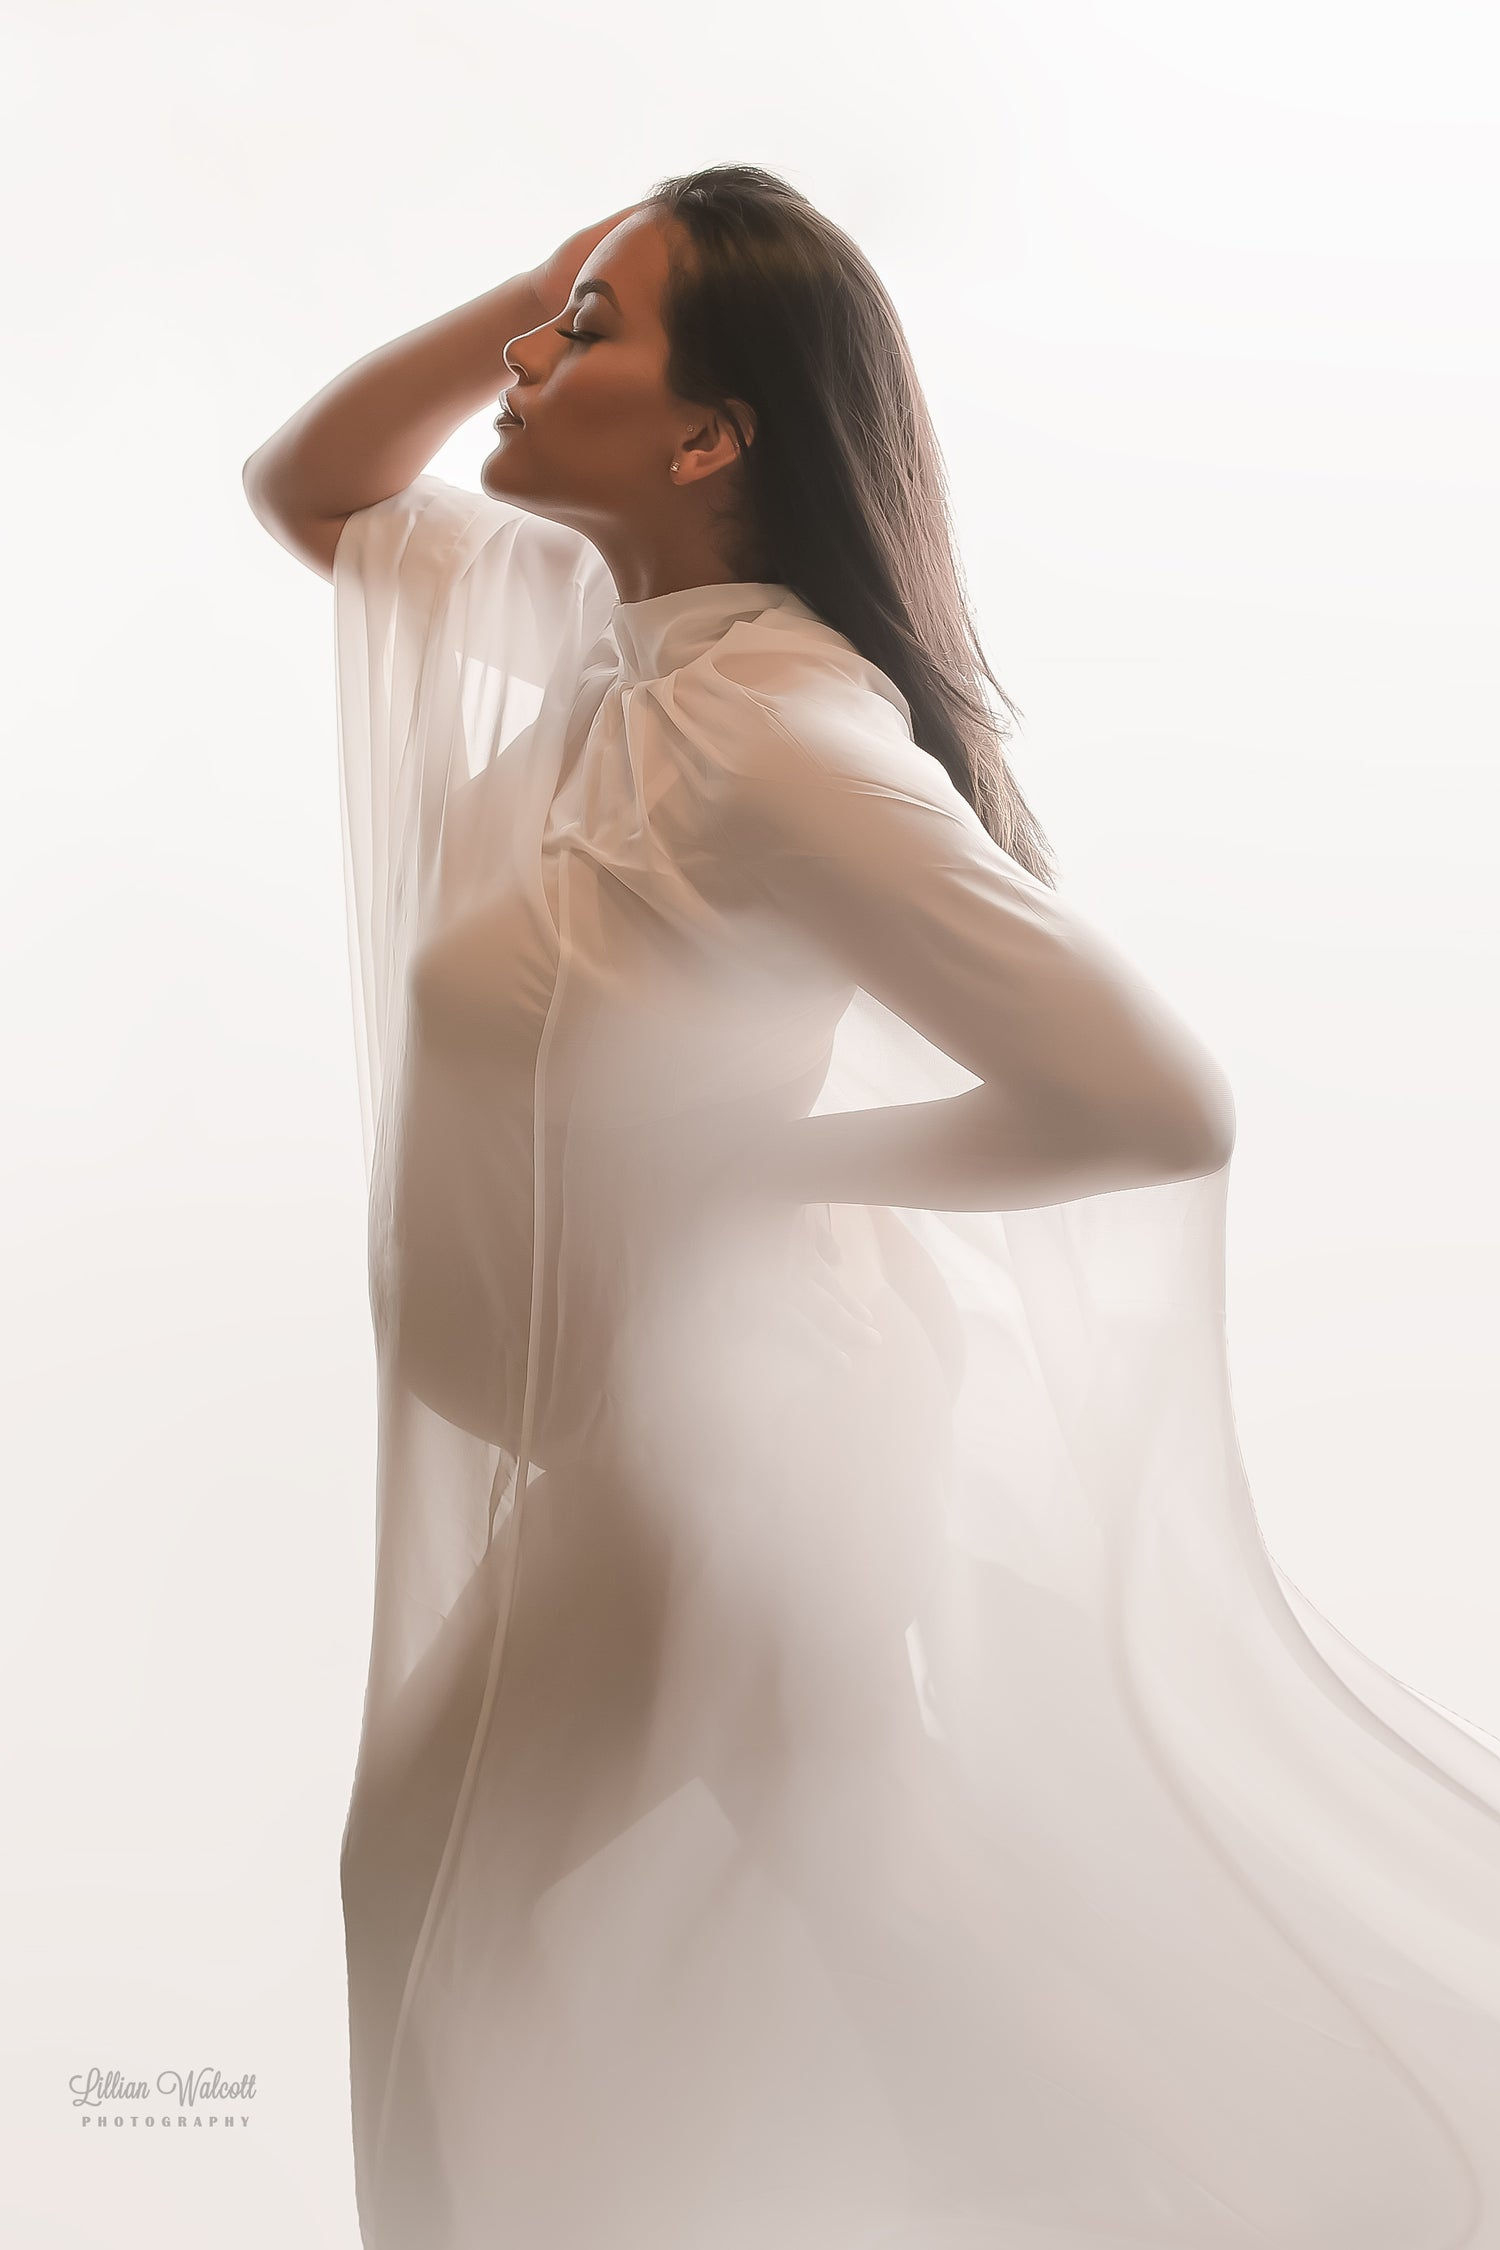 Image of Studio Maternity Session (45 Minutes)